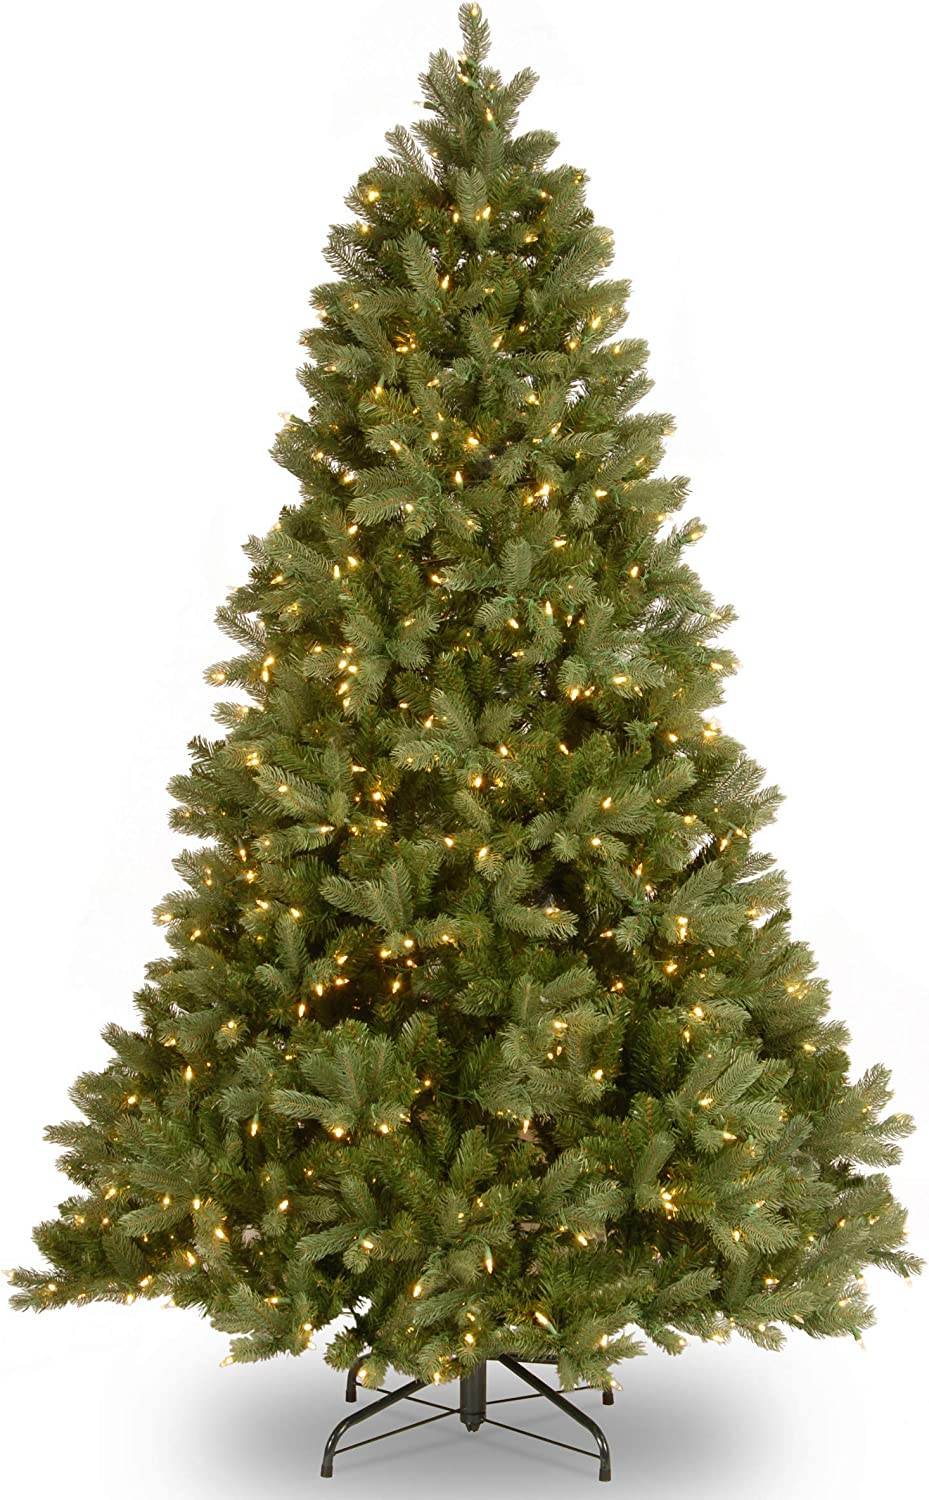 National Tree Company 'Feel Real' Pre-lit Artificial Christmas Tree | Includes Pre-strung White Lights and Stand | Downswept Douglas Fir - 7 ft